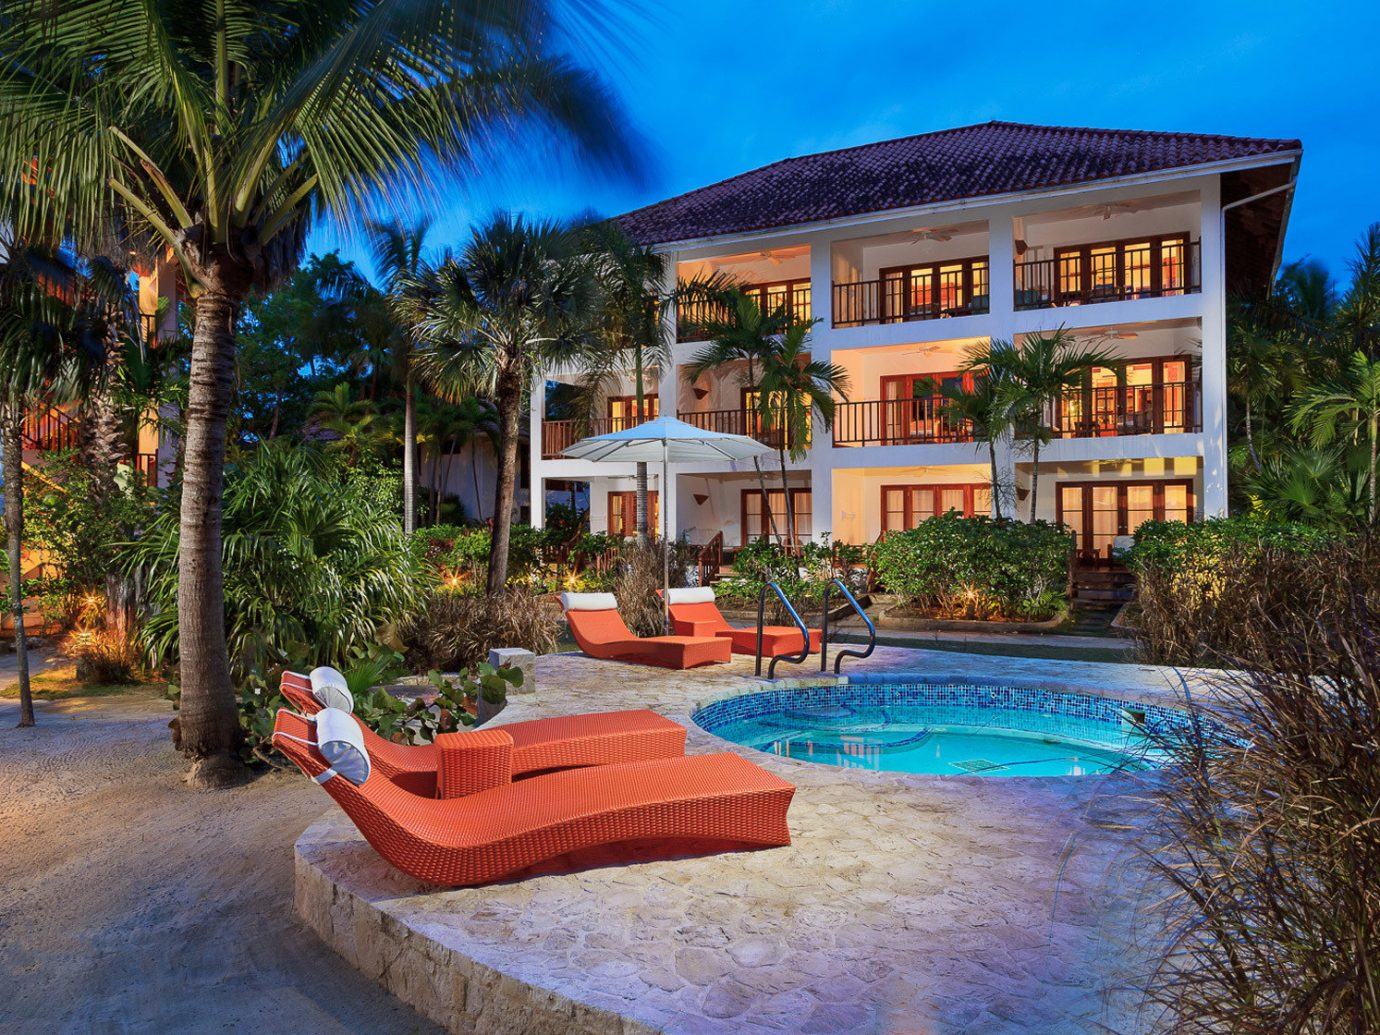 Hotels tree outdoor leisure swimming pool property Resort estate vacation home Villa real estate backyard mansion